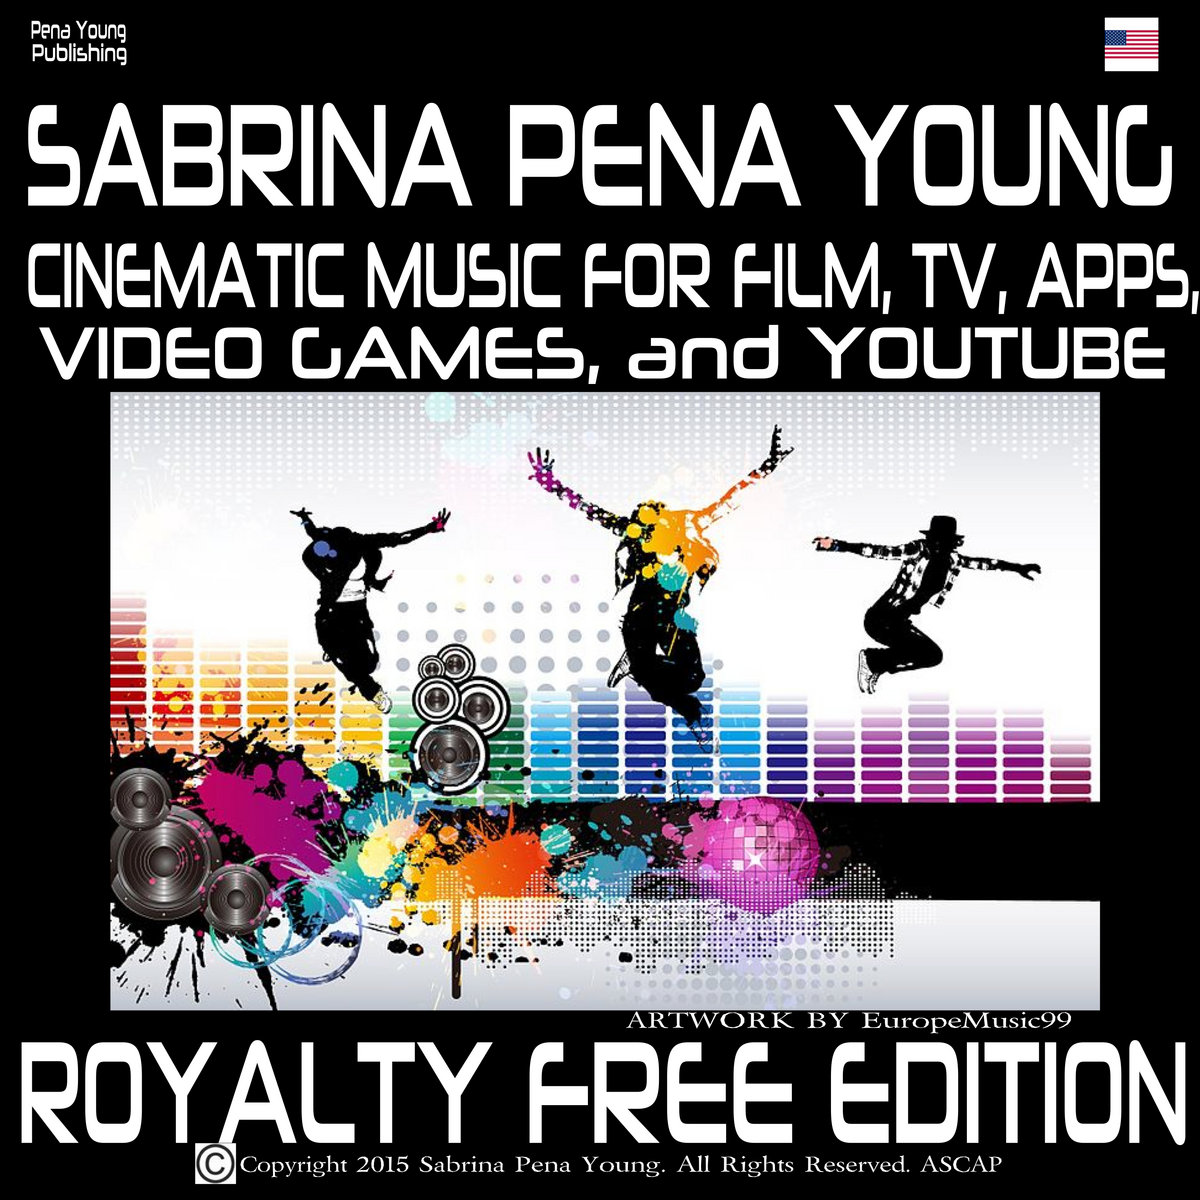 9caf49f071 ROYALTY FREE EDITION: Cinematic Music for Film, TV, Apps, Video ...